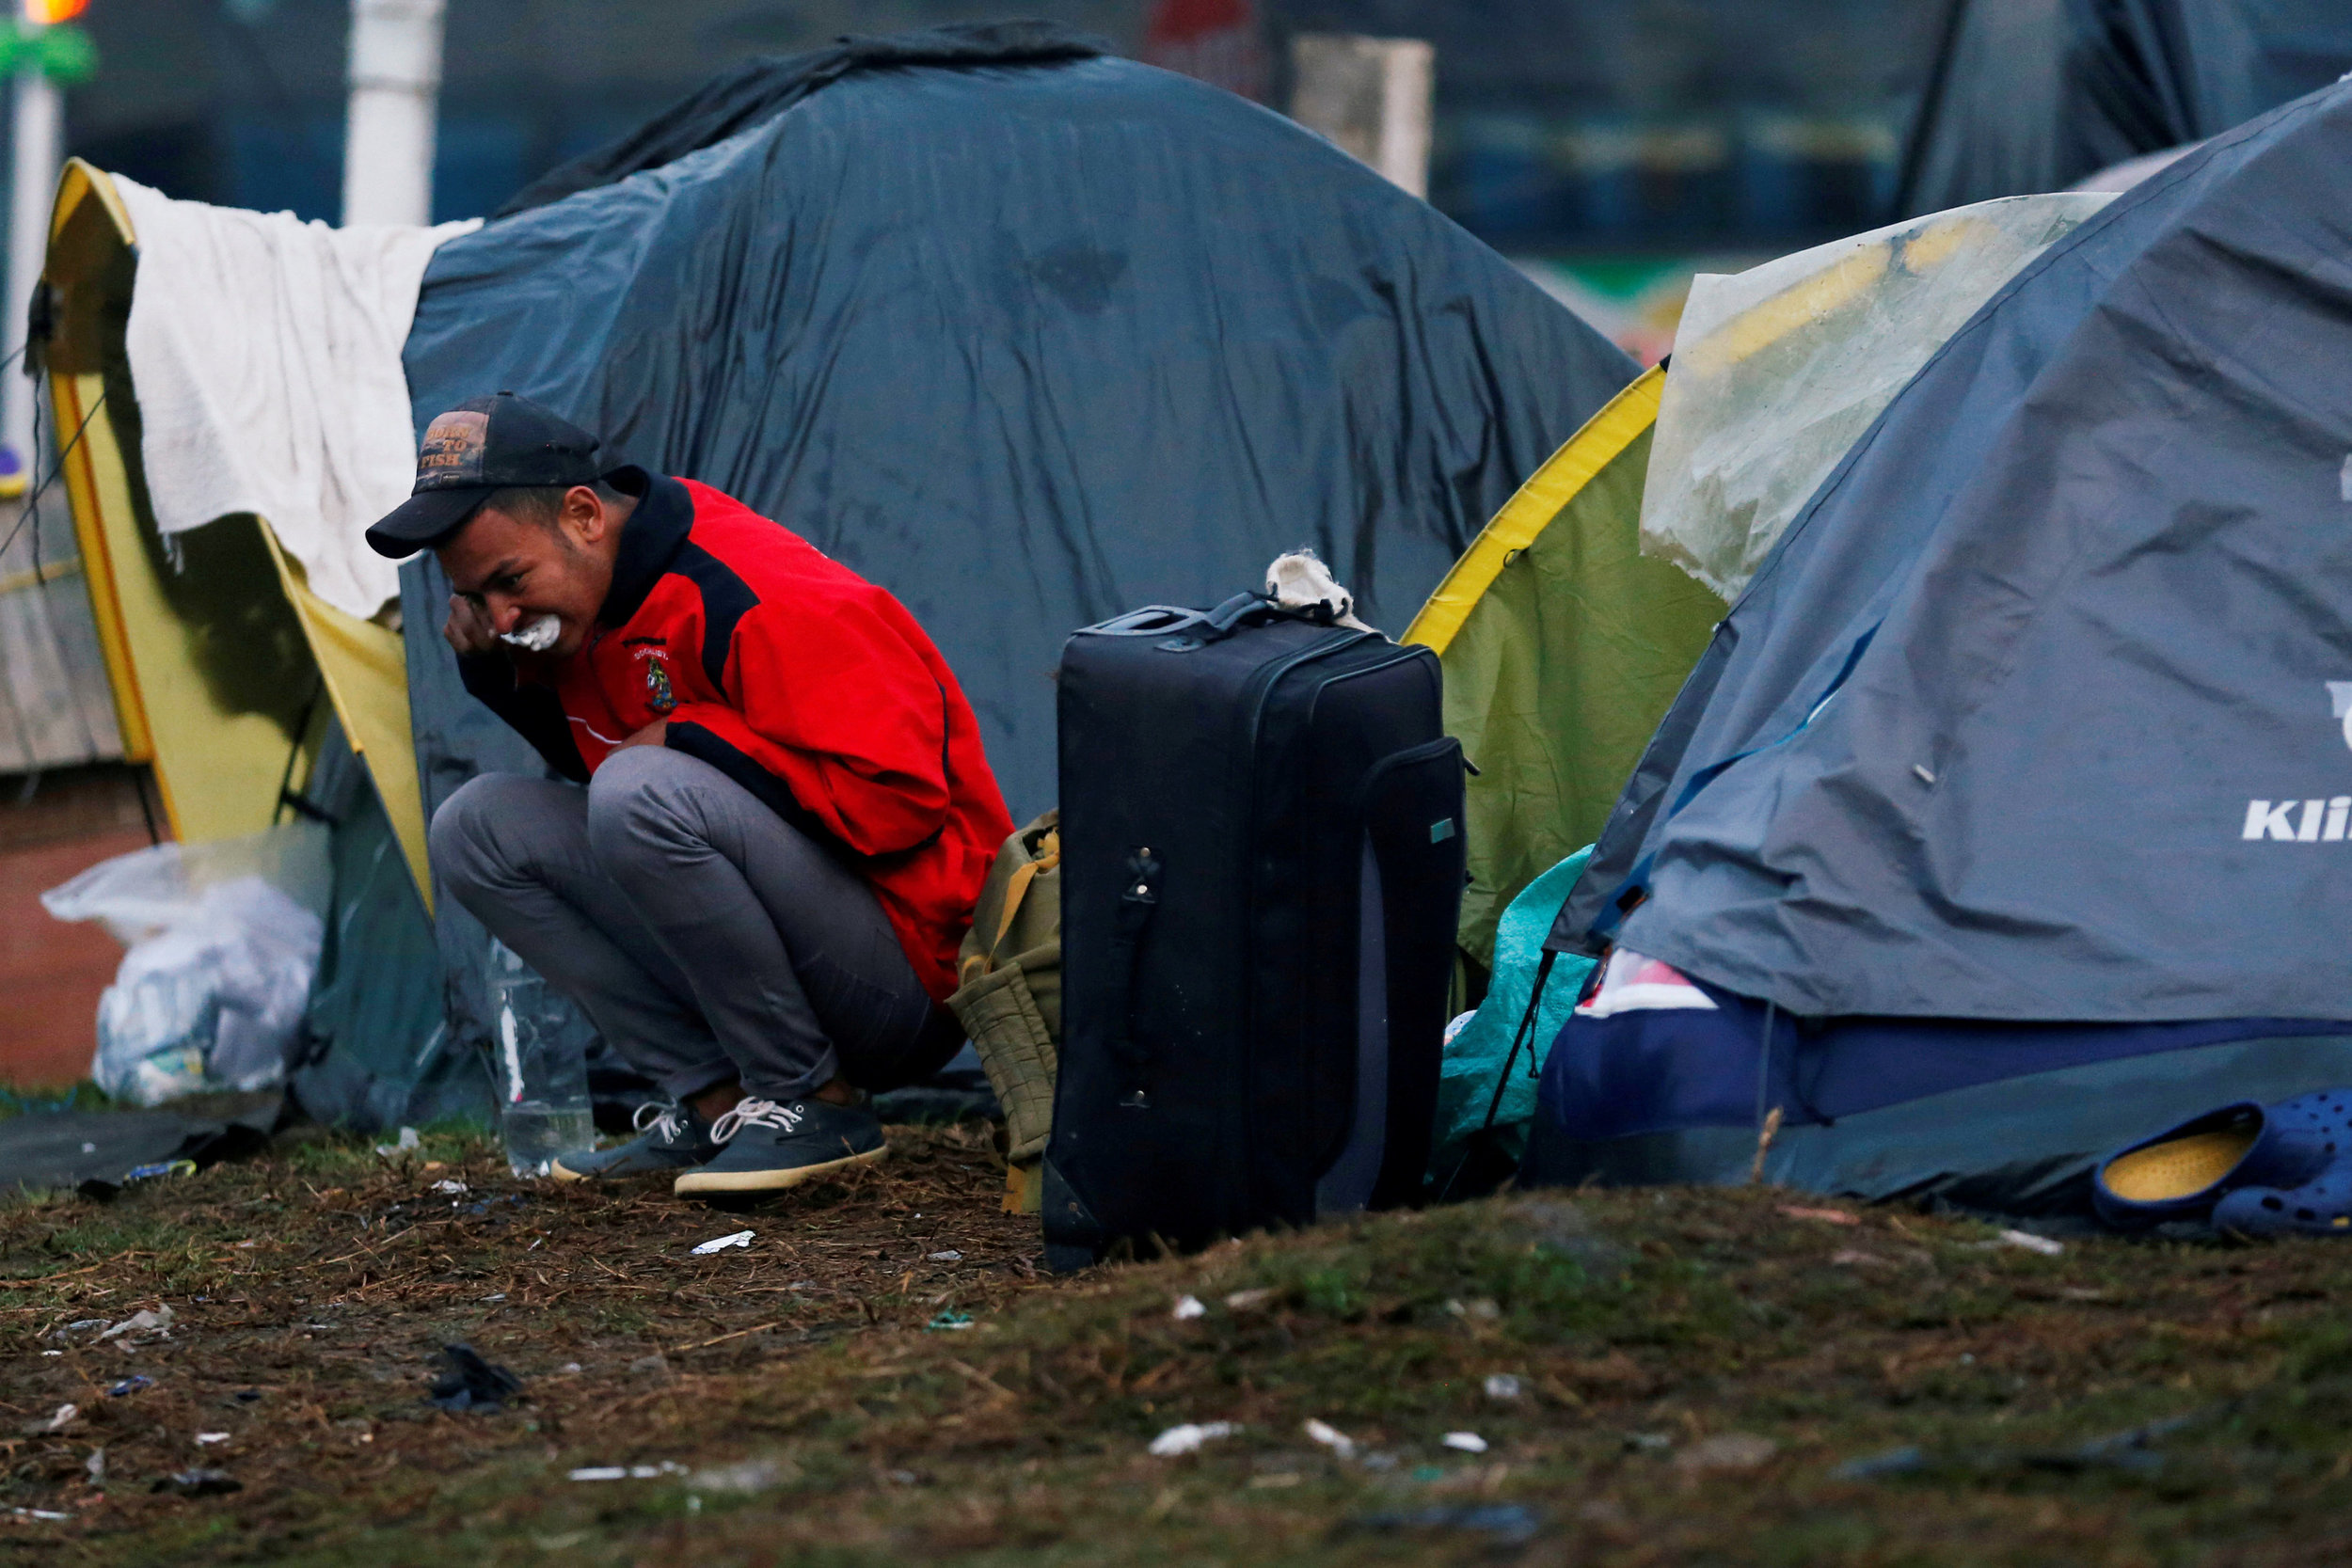 A Venezuelan migrant brushes his teeth outside his tent at a makeshift camp Nov. 26 in Bogota, Colombia. [Photo: NS photo/Luisa Gonzalez, Reuters]